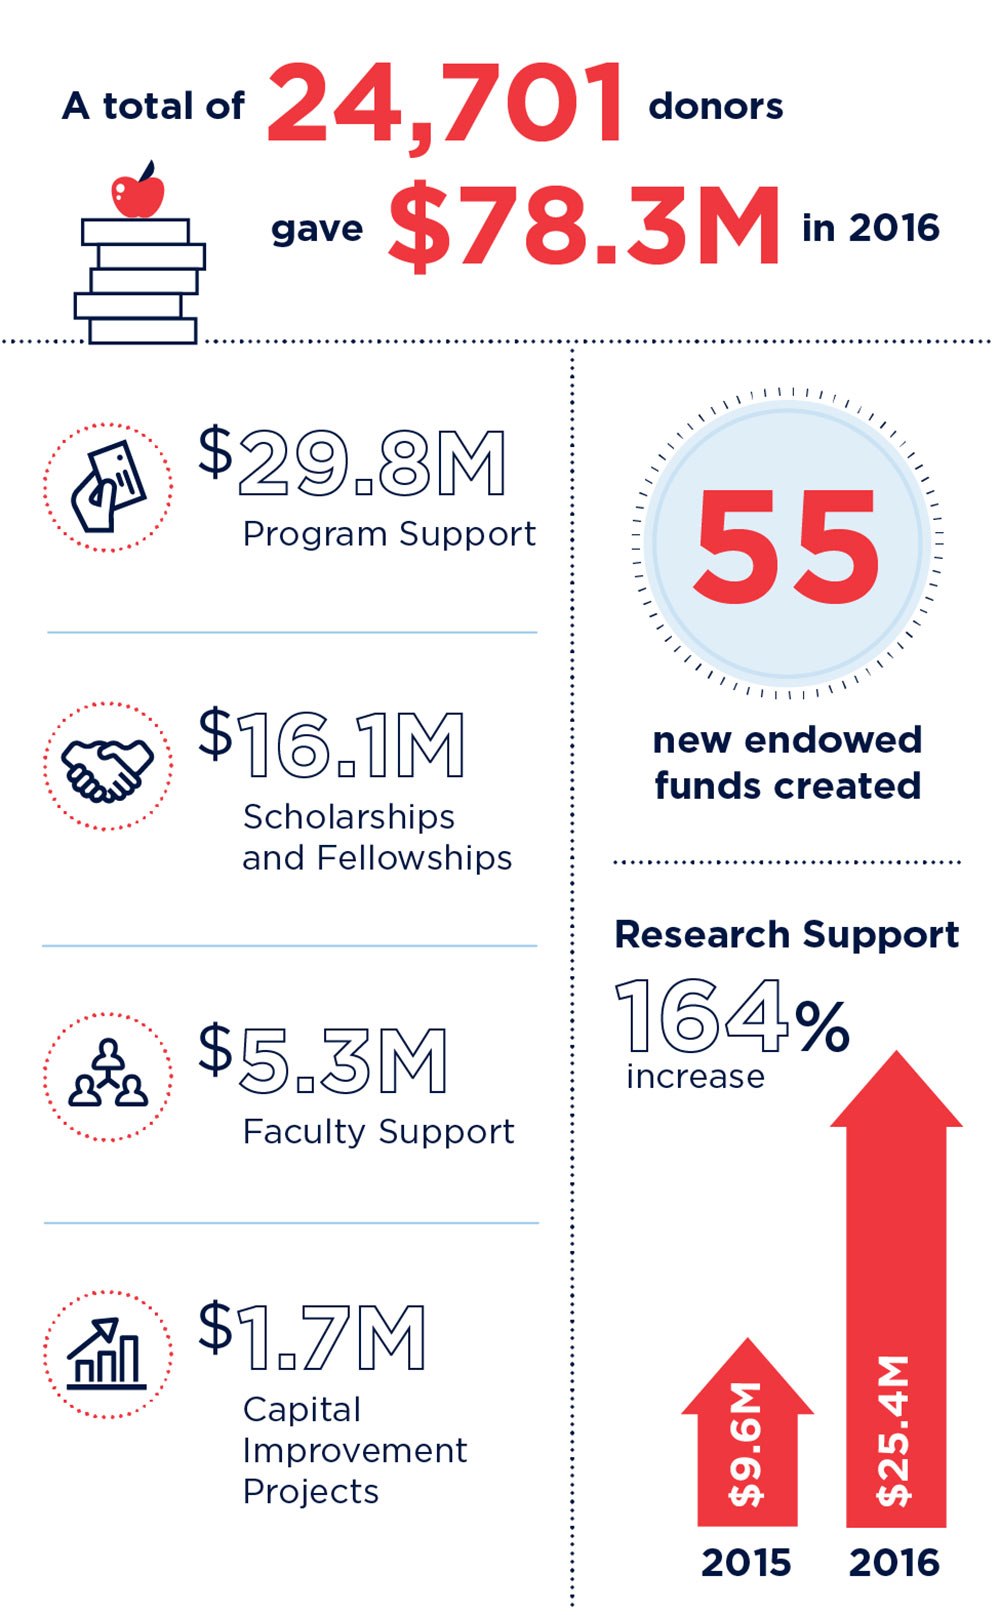 A total of 24,701 donors gave $78.3 million in 2016. 29.8 million dollars to Program Support. 161 million dollars to Scholarships and Fellowships. 5.3 million dollars to Faculty Support. 1.7 million dollars to Capital Improvement Projects. 55 new endowed funds created. Research Support increased 164% - from 9.6 million dollars in 2015 to 25.4 million dollars in 2016.